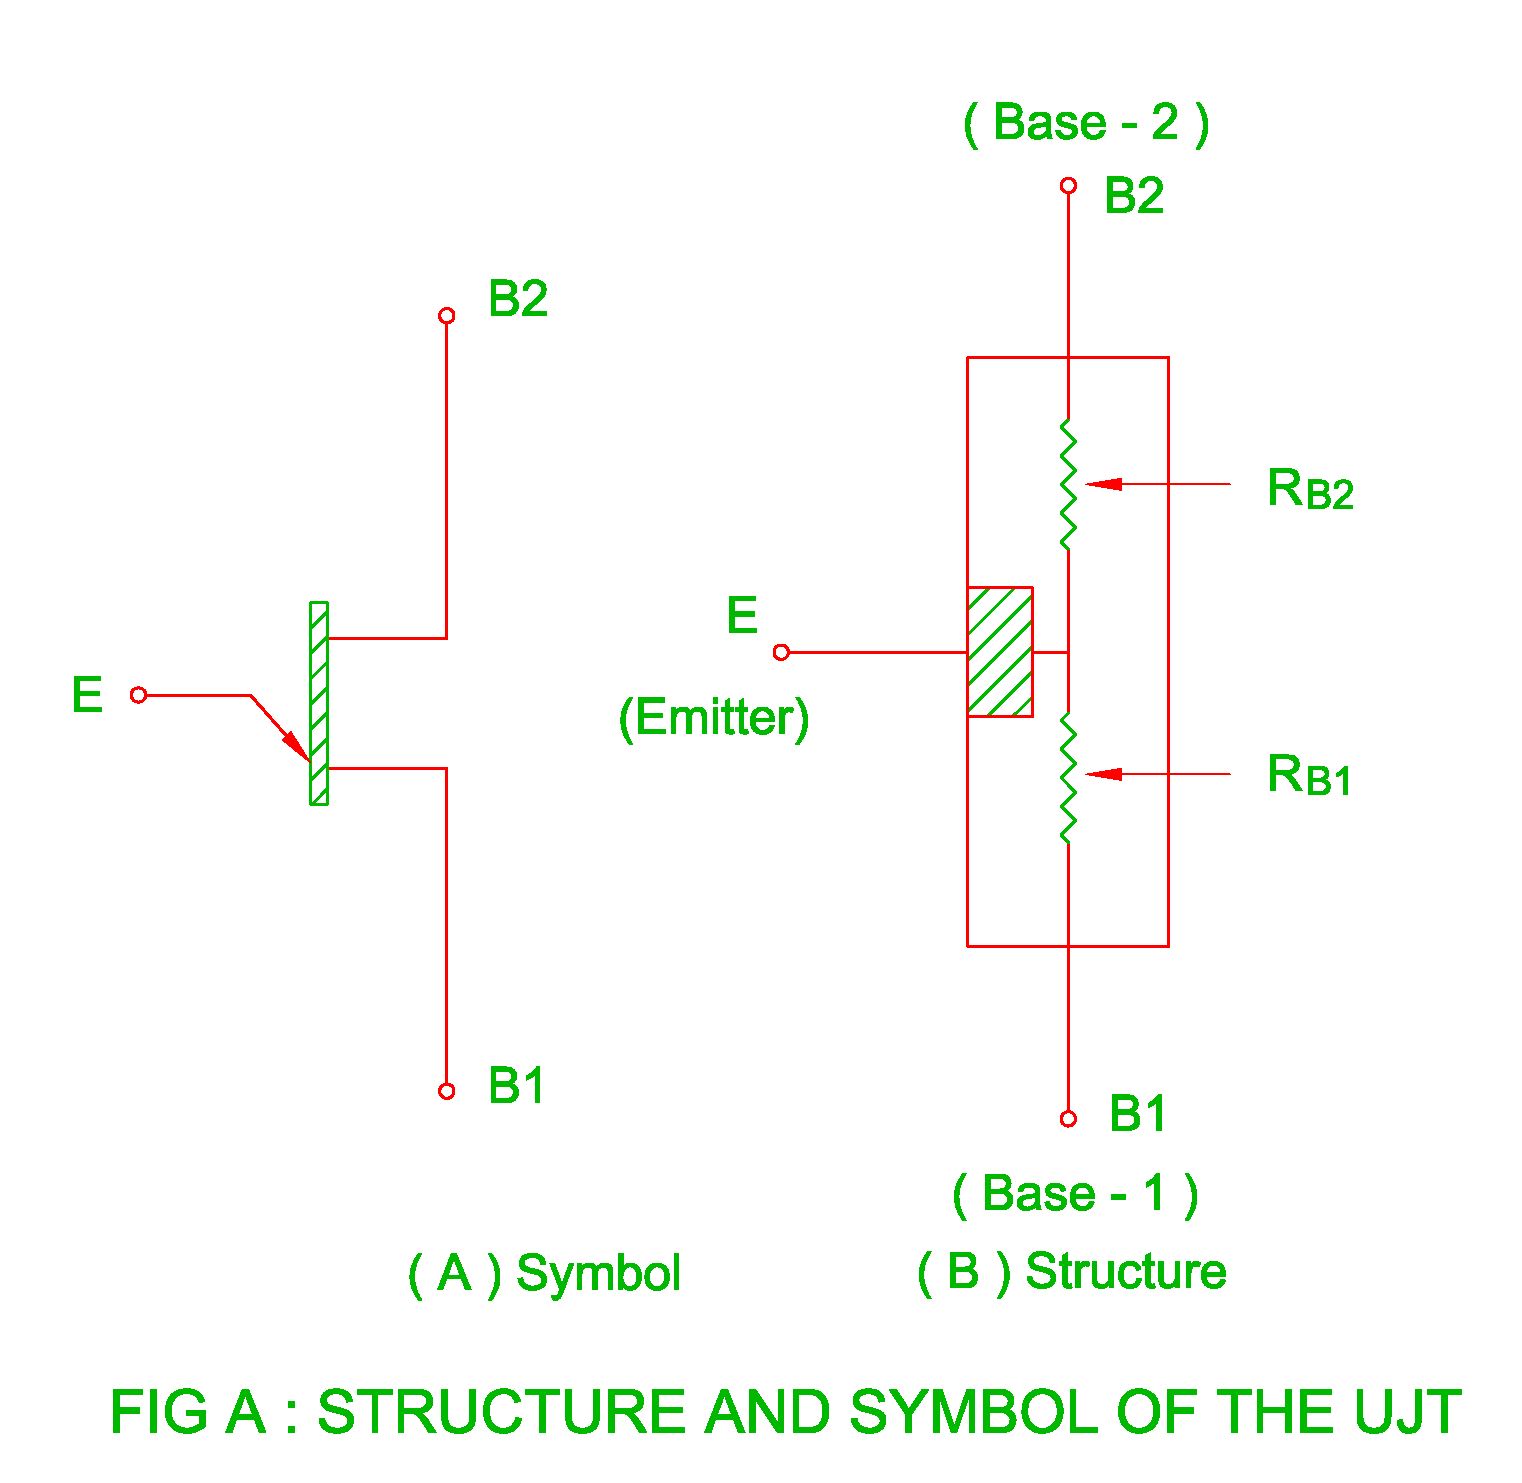 hight resolution of it has three terminals base 1 b 1 base 2 b 2 and emitter the structure and symbol of the ujt is shown in the figure a